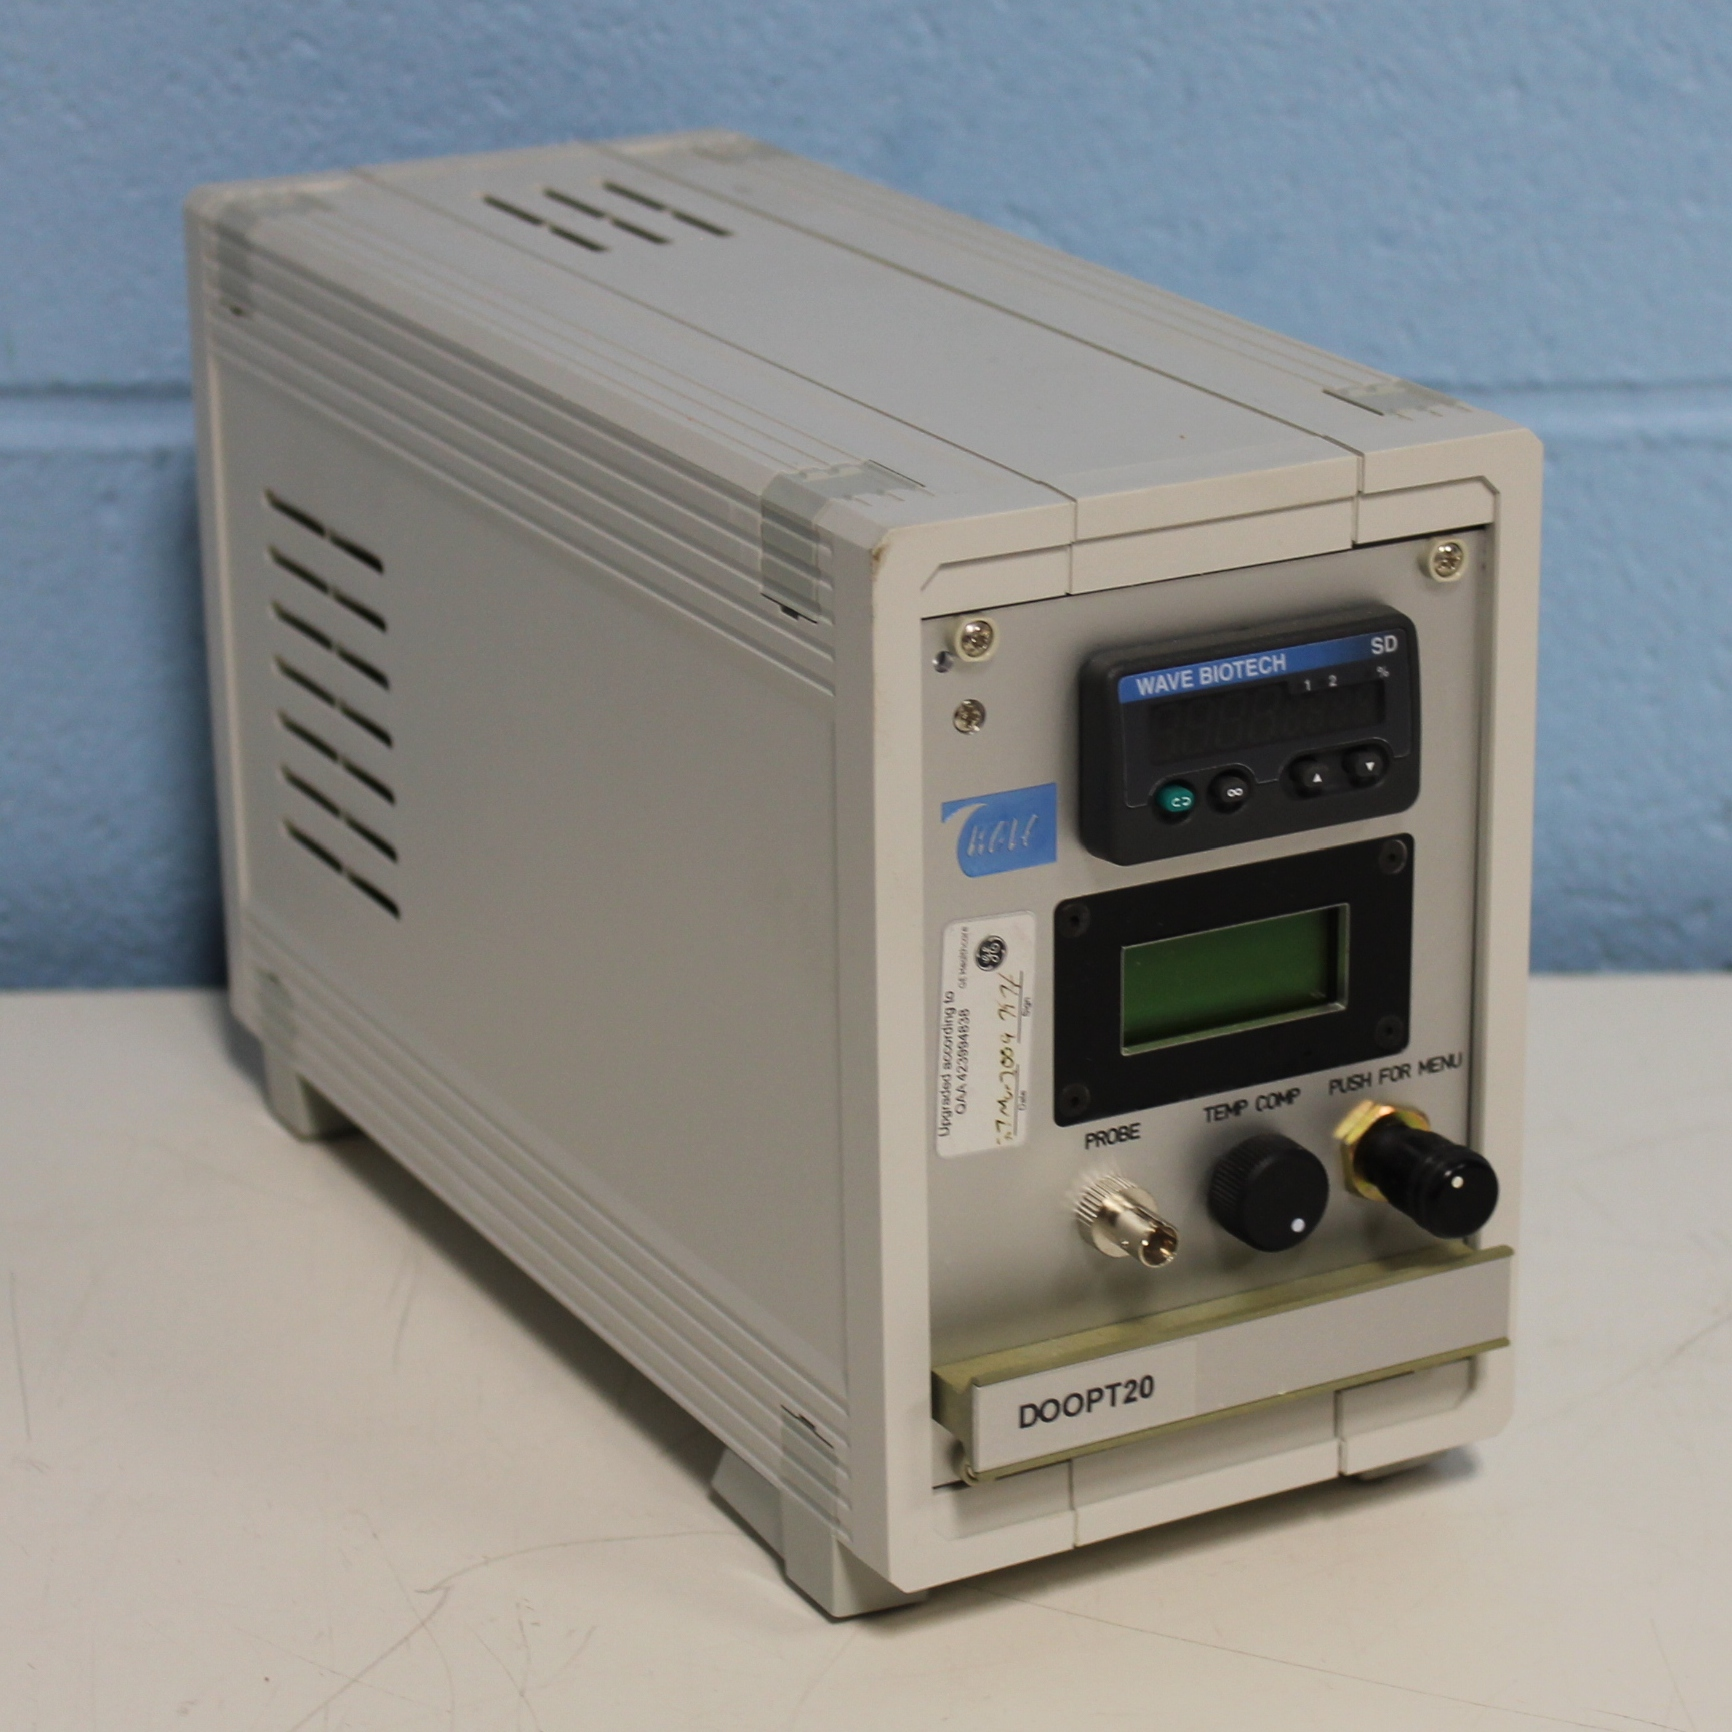 Optical Fiber Monitor : Refurbished wave biotech doopt fiber optic dissolved